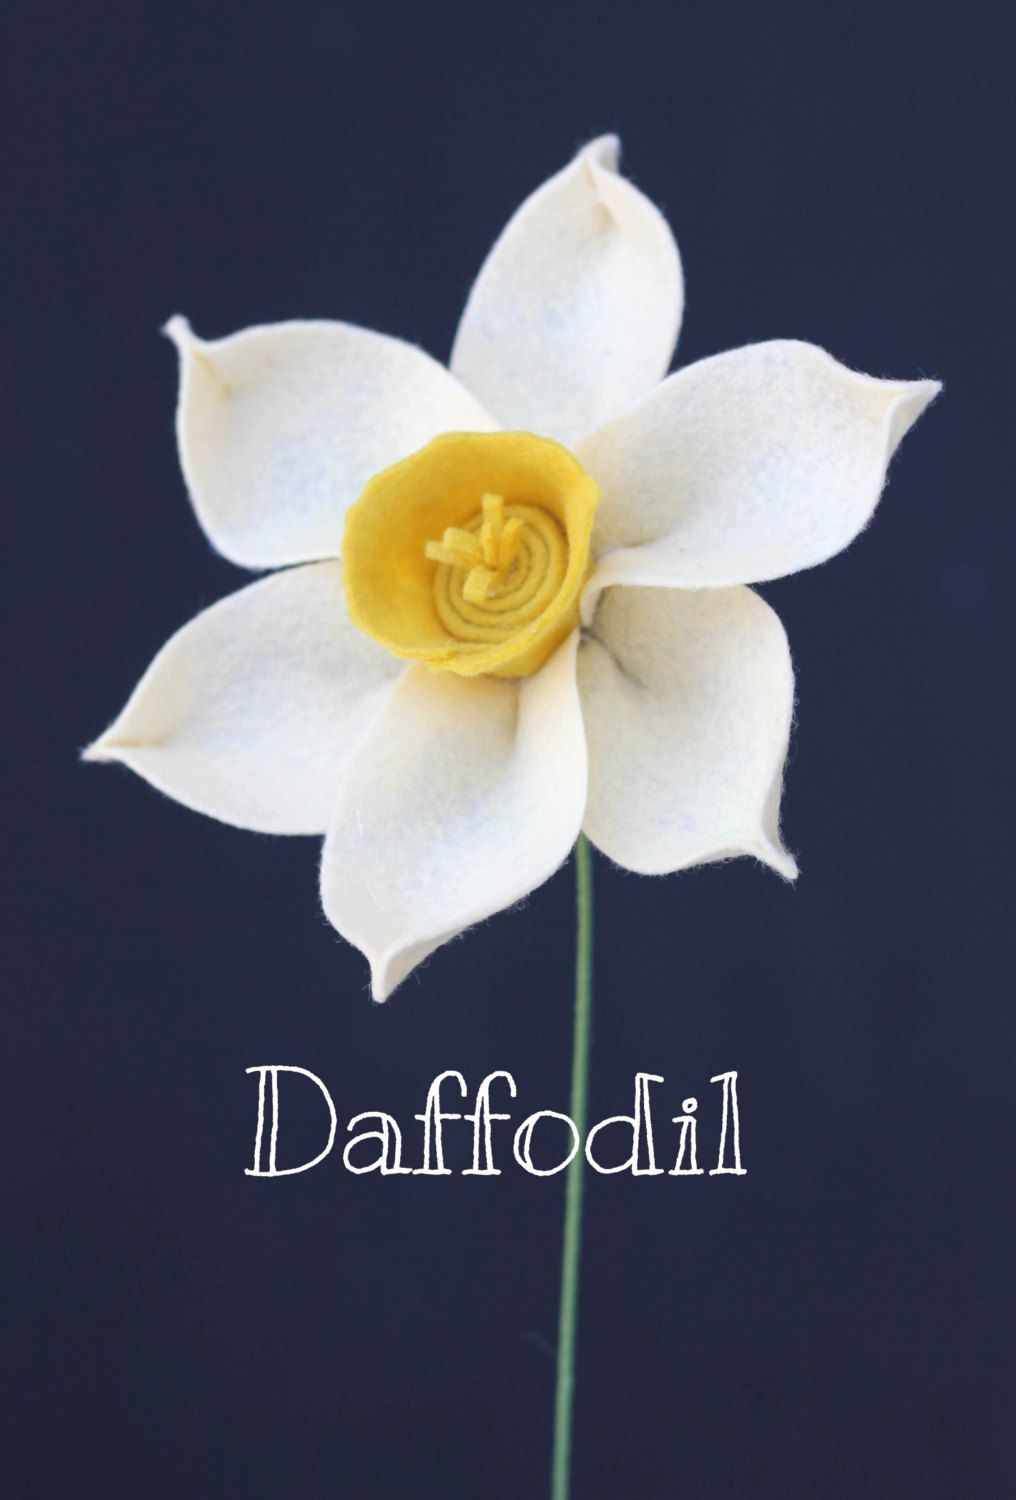 Felt daffodil narcissus build your own bouquet for the love of felt daffodil narcissus build your own bouquet izmirmasajfo